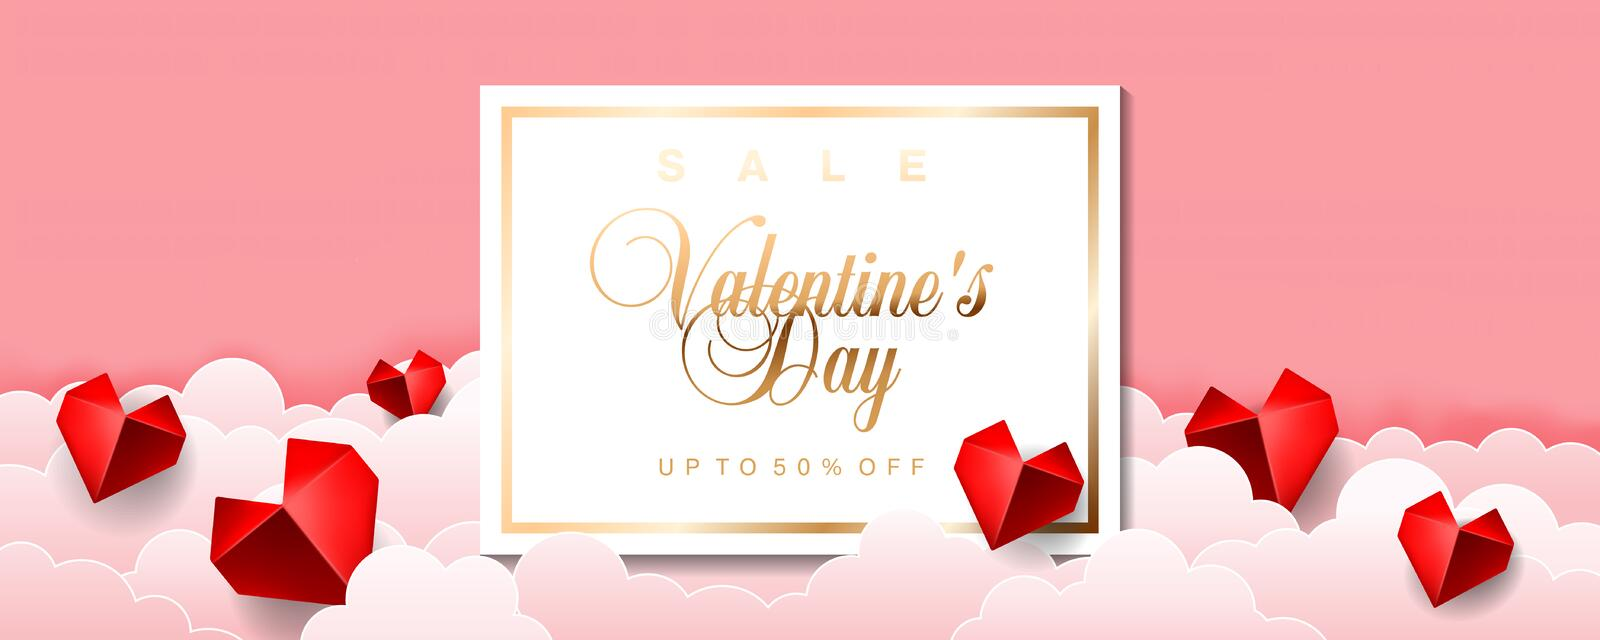 Valentines Day sale special offer discount vector illustration banner flyer poster voucher website header template with origami pa royalty free illustration